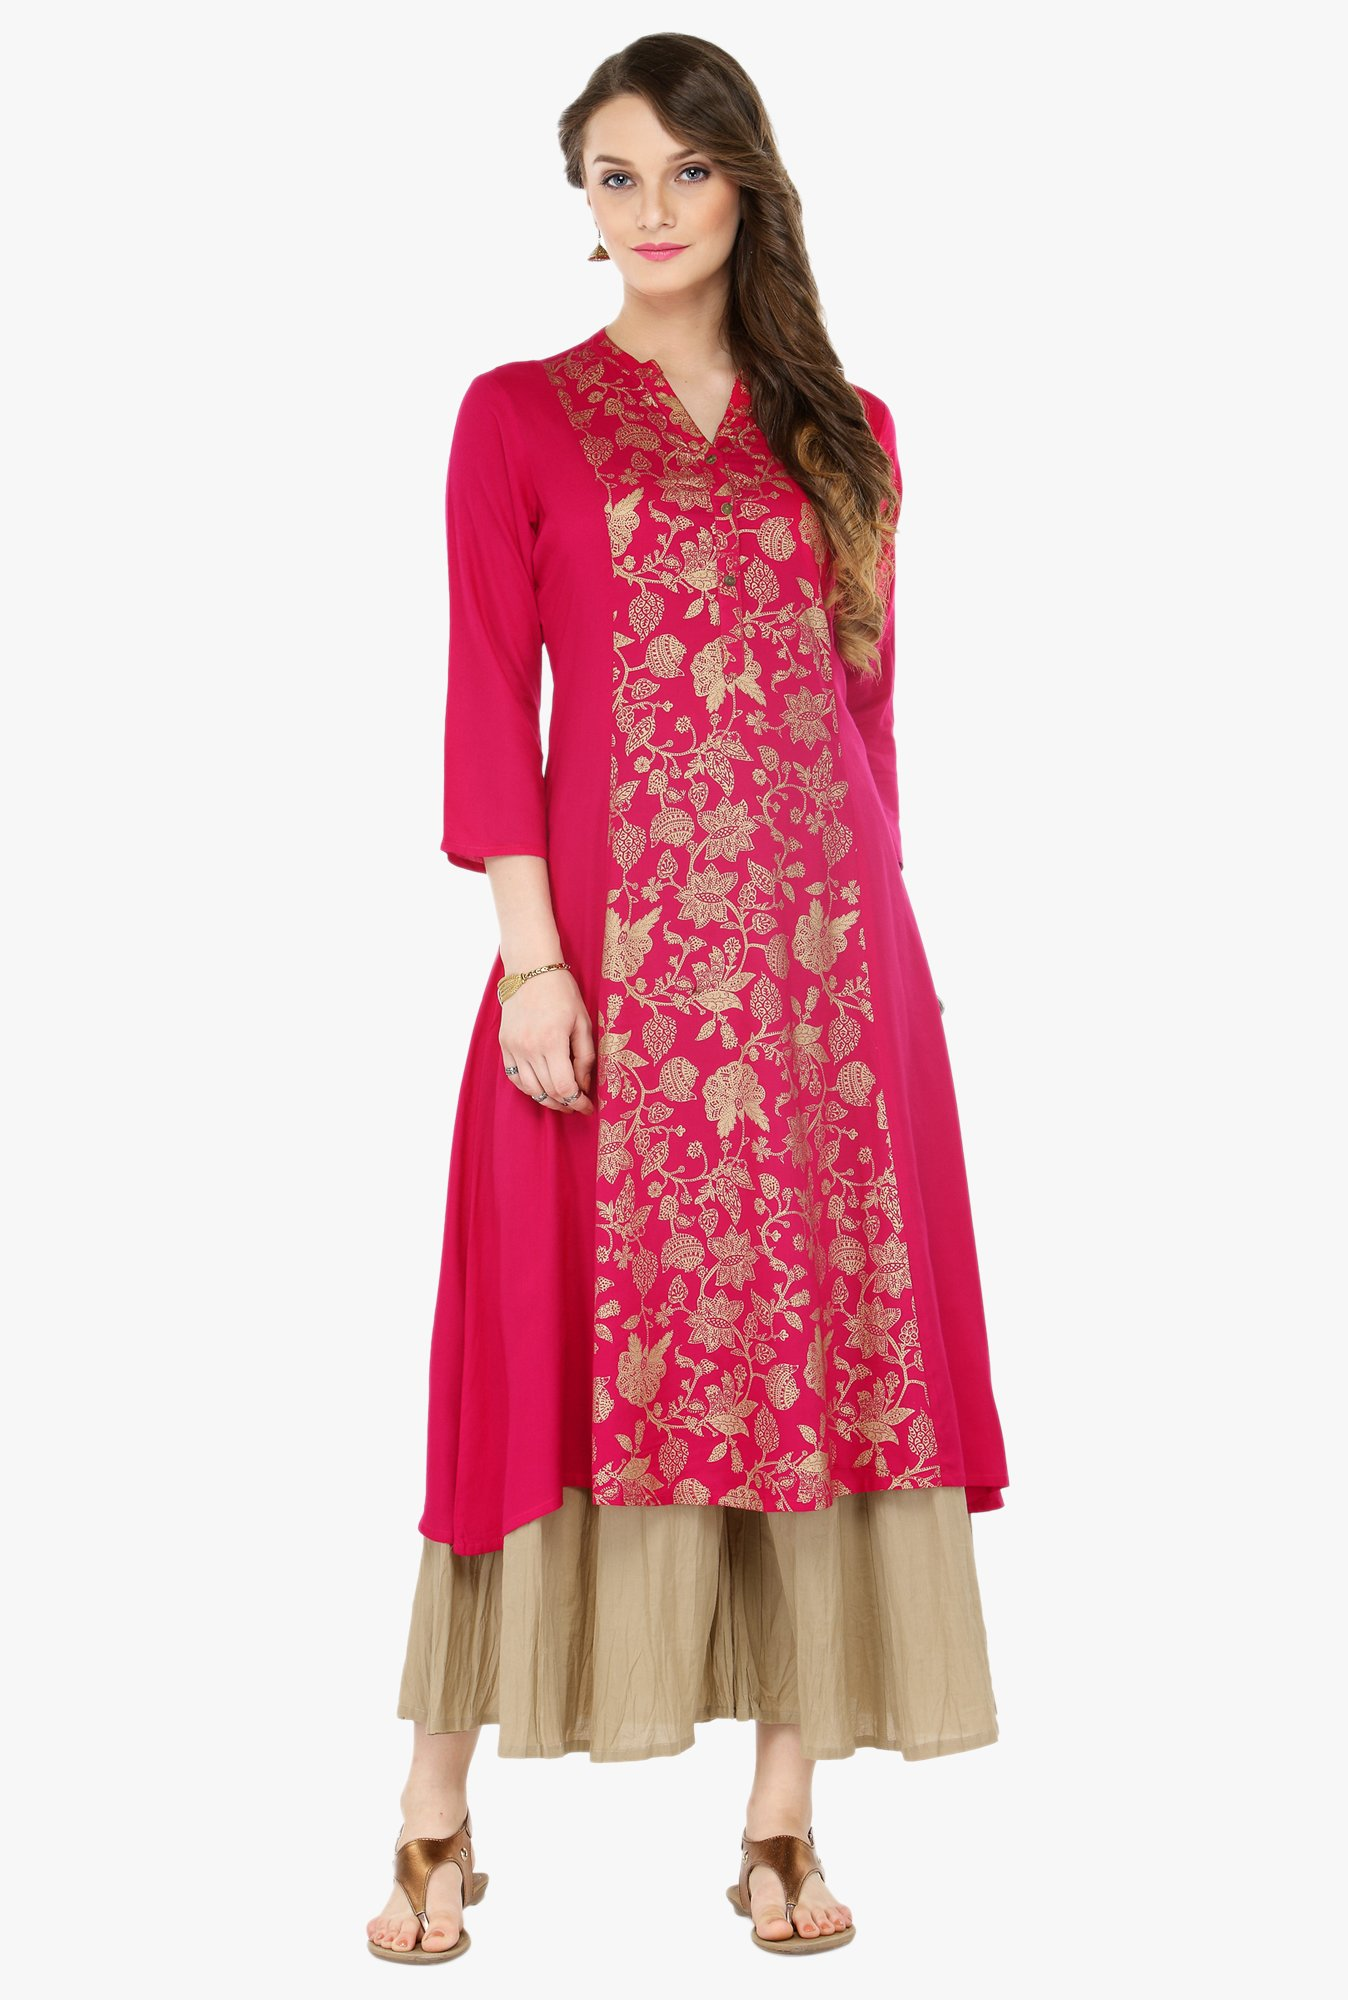 Varanga Pink & Beige Printed Cotton Kurta With Palazzo